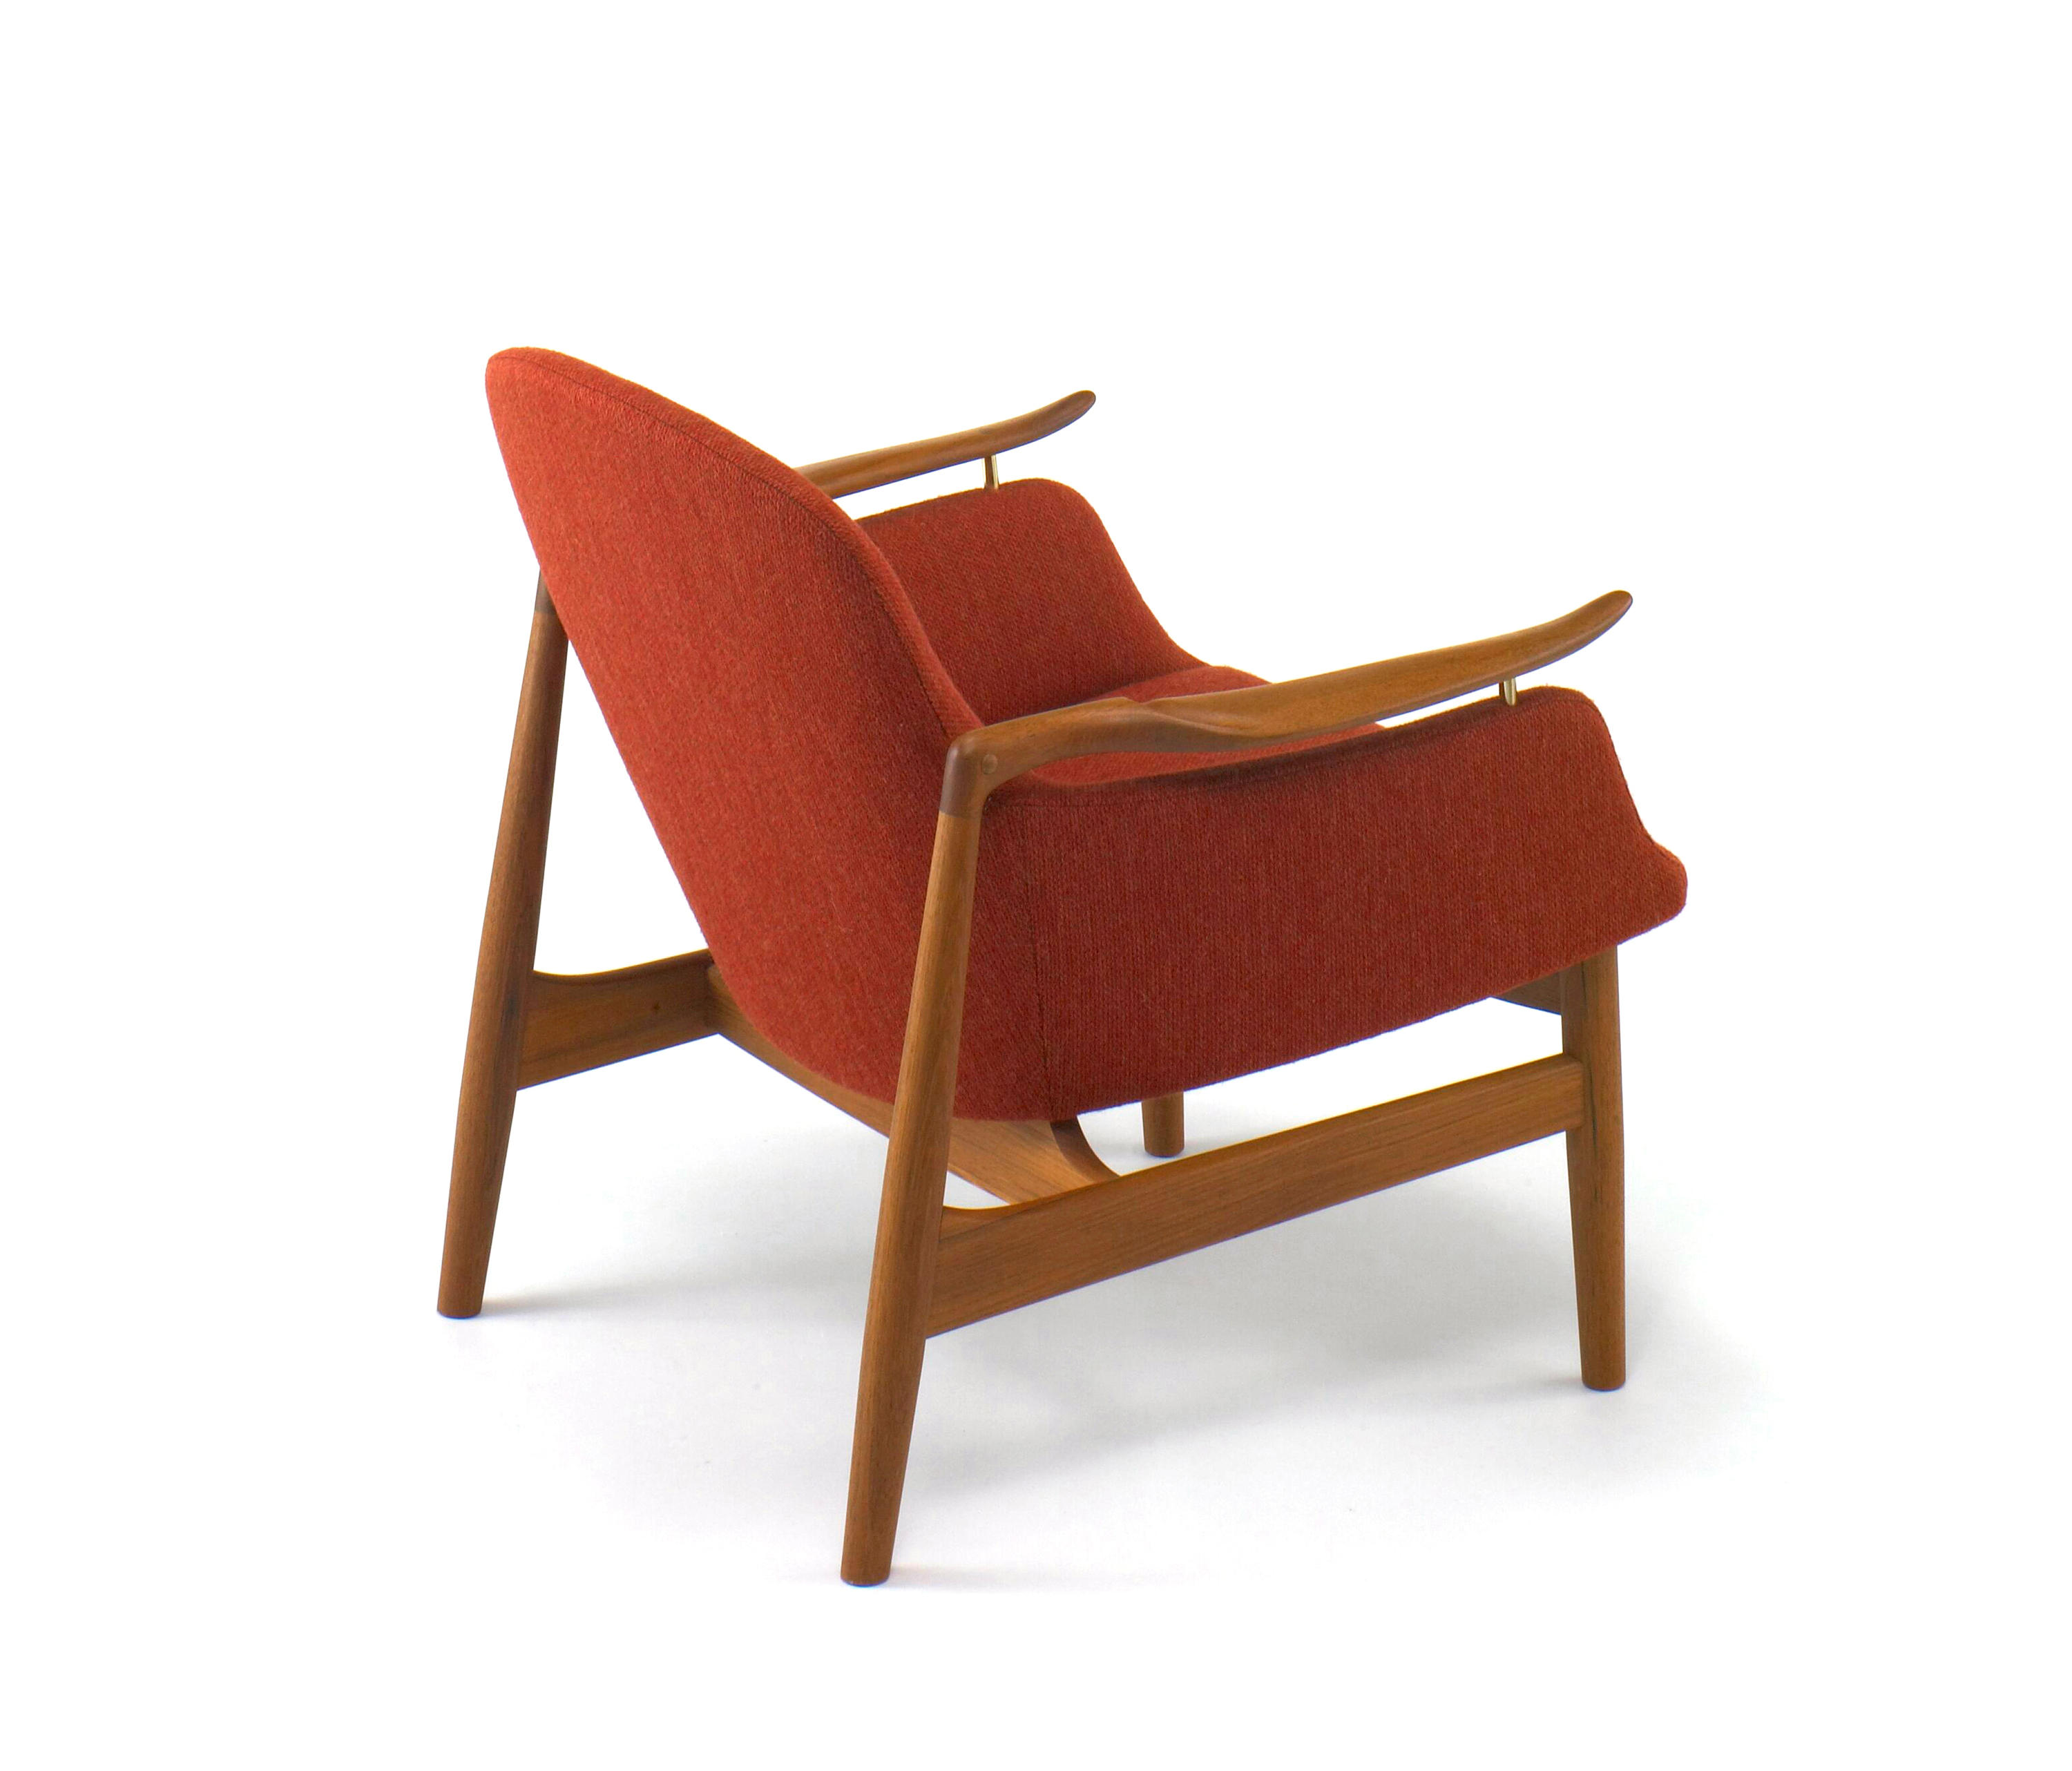 FJ 01 EASY CHAIR Lounge chairs from Kitani Japan Inc